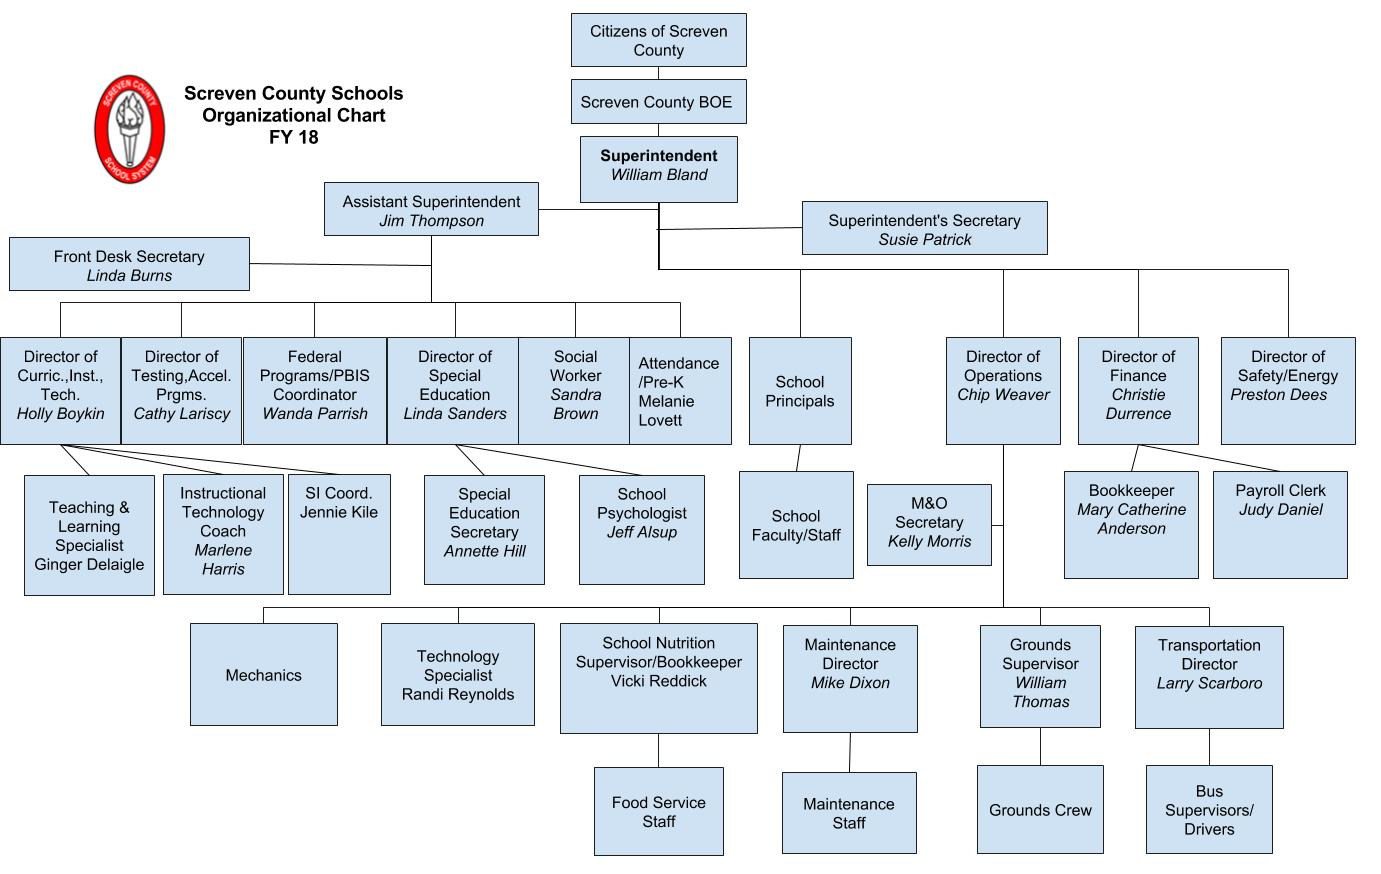 Screven County Schools Organizational Chart FY 18